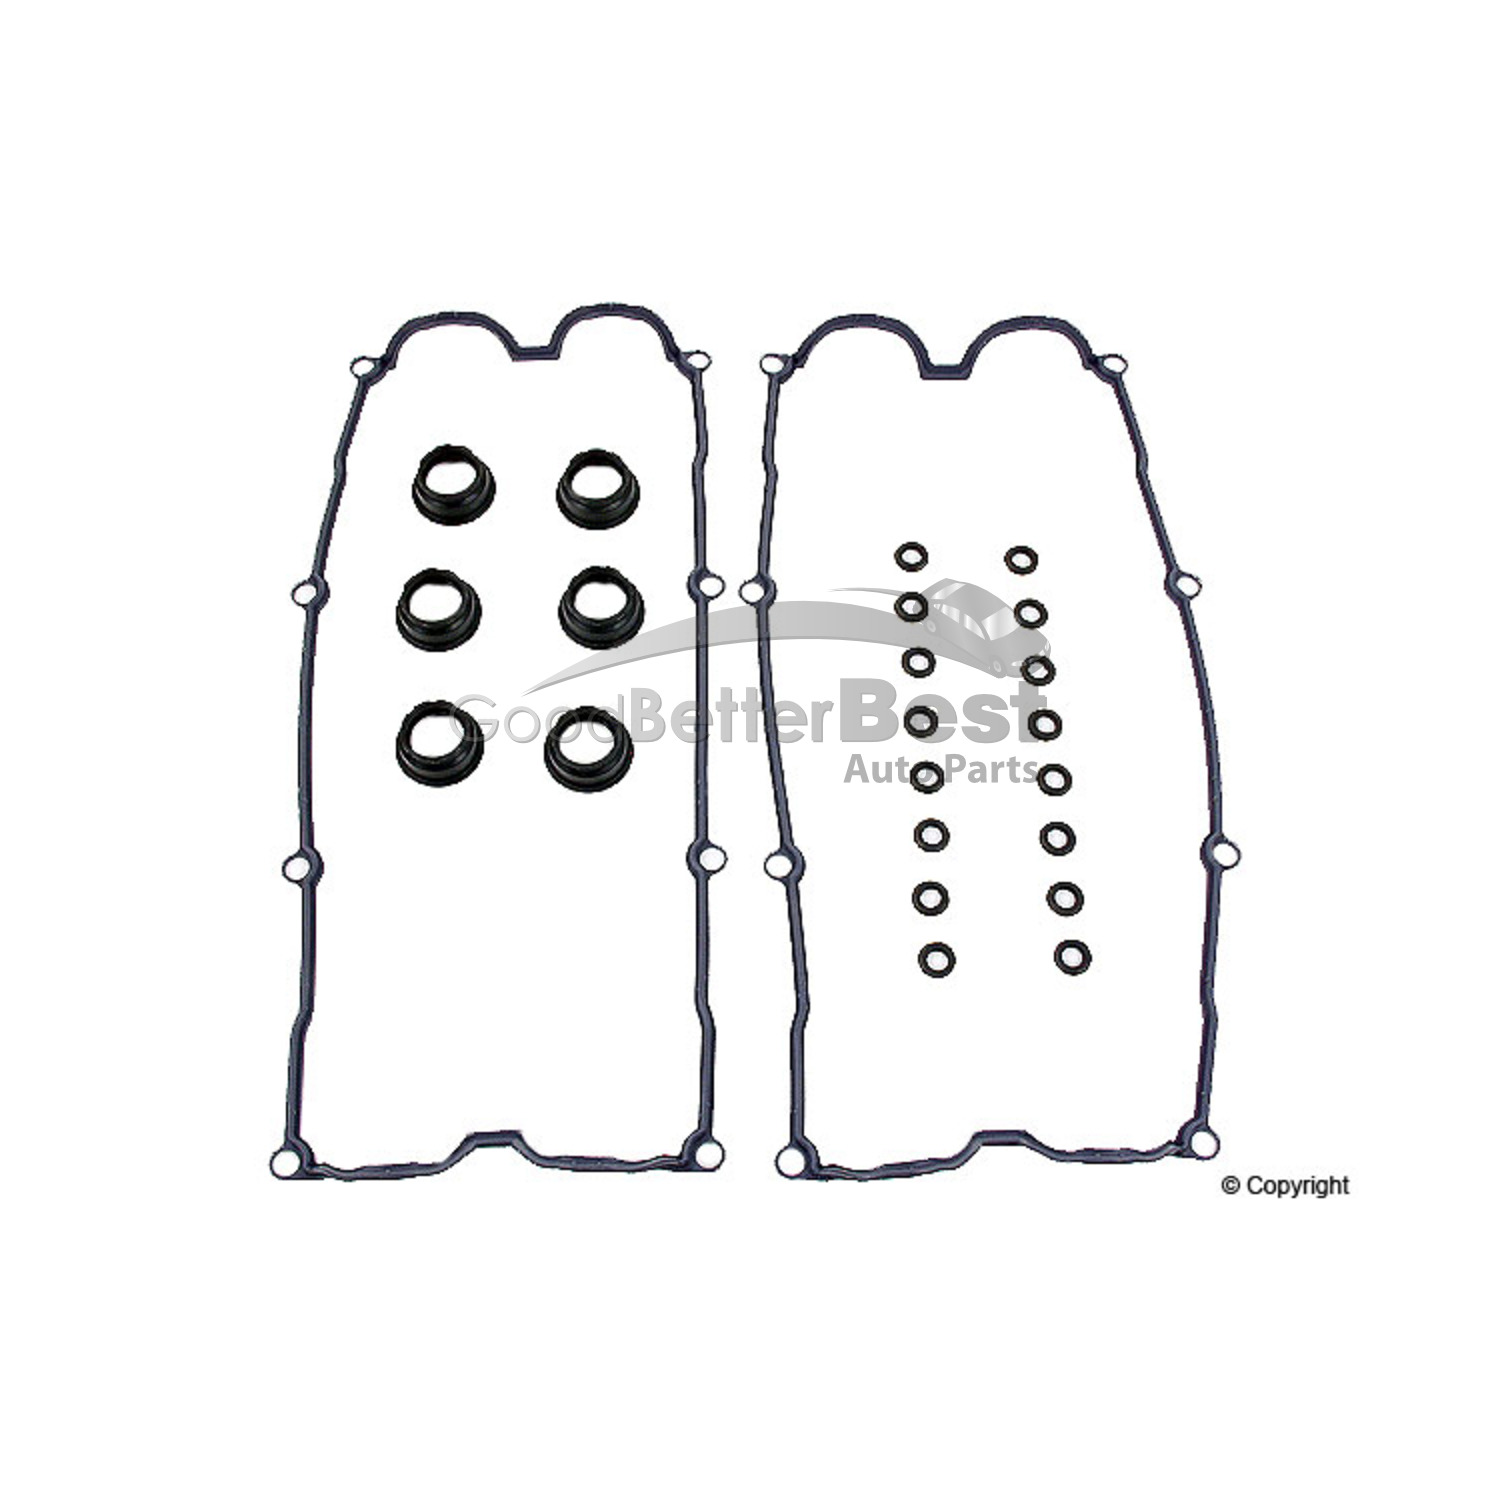 New Rock Engine Valve Cover Gasket Set VC353G